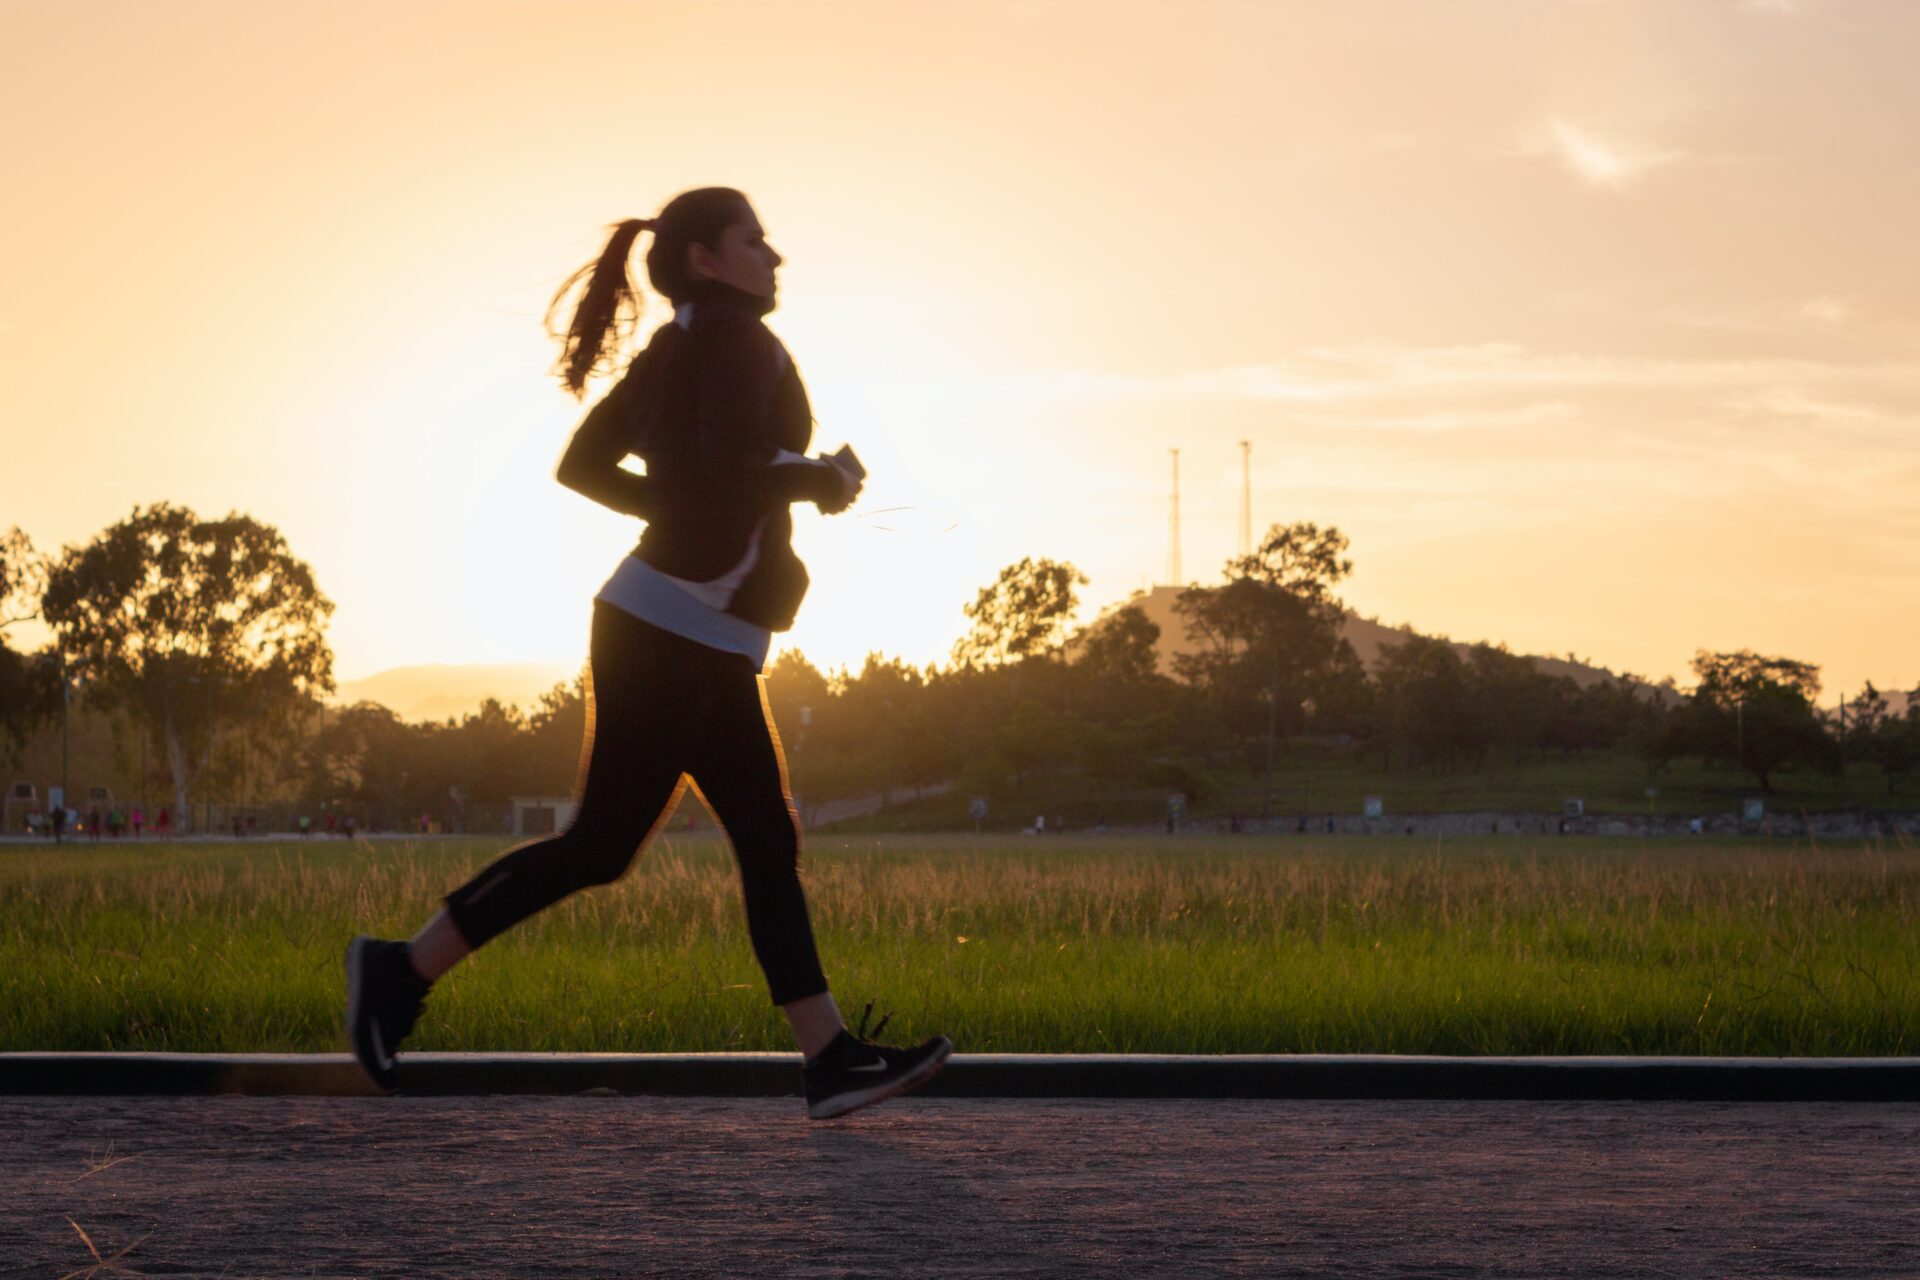 Lady running on a road at sunset